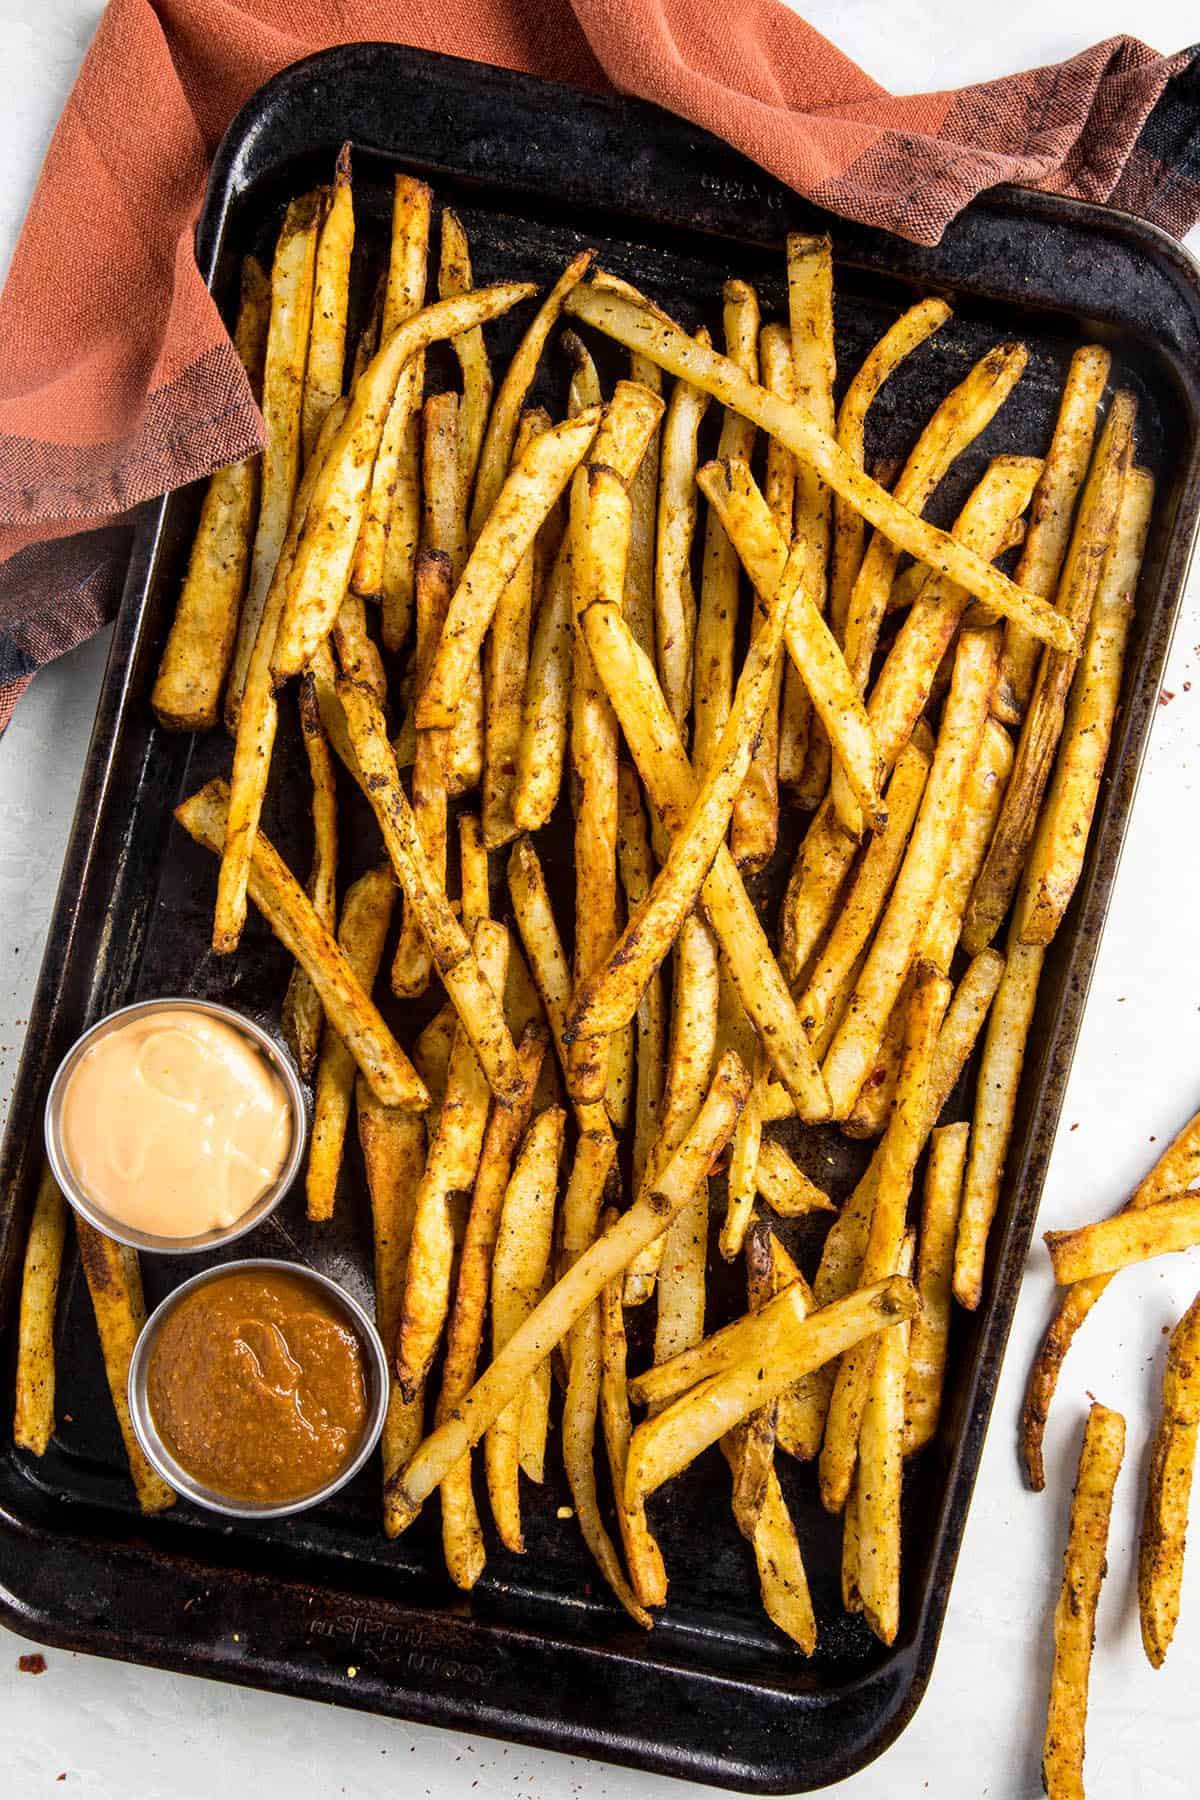 Baked Cajun Fries, just out of the oven